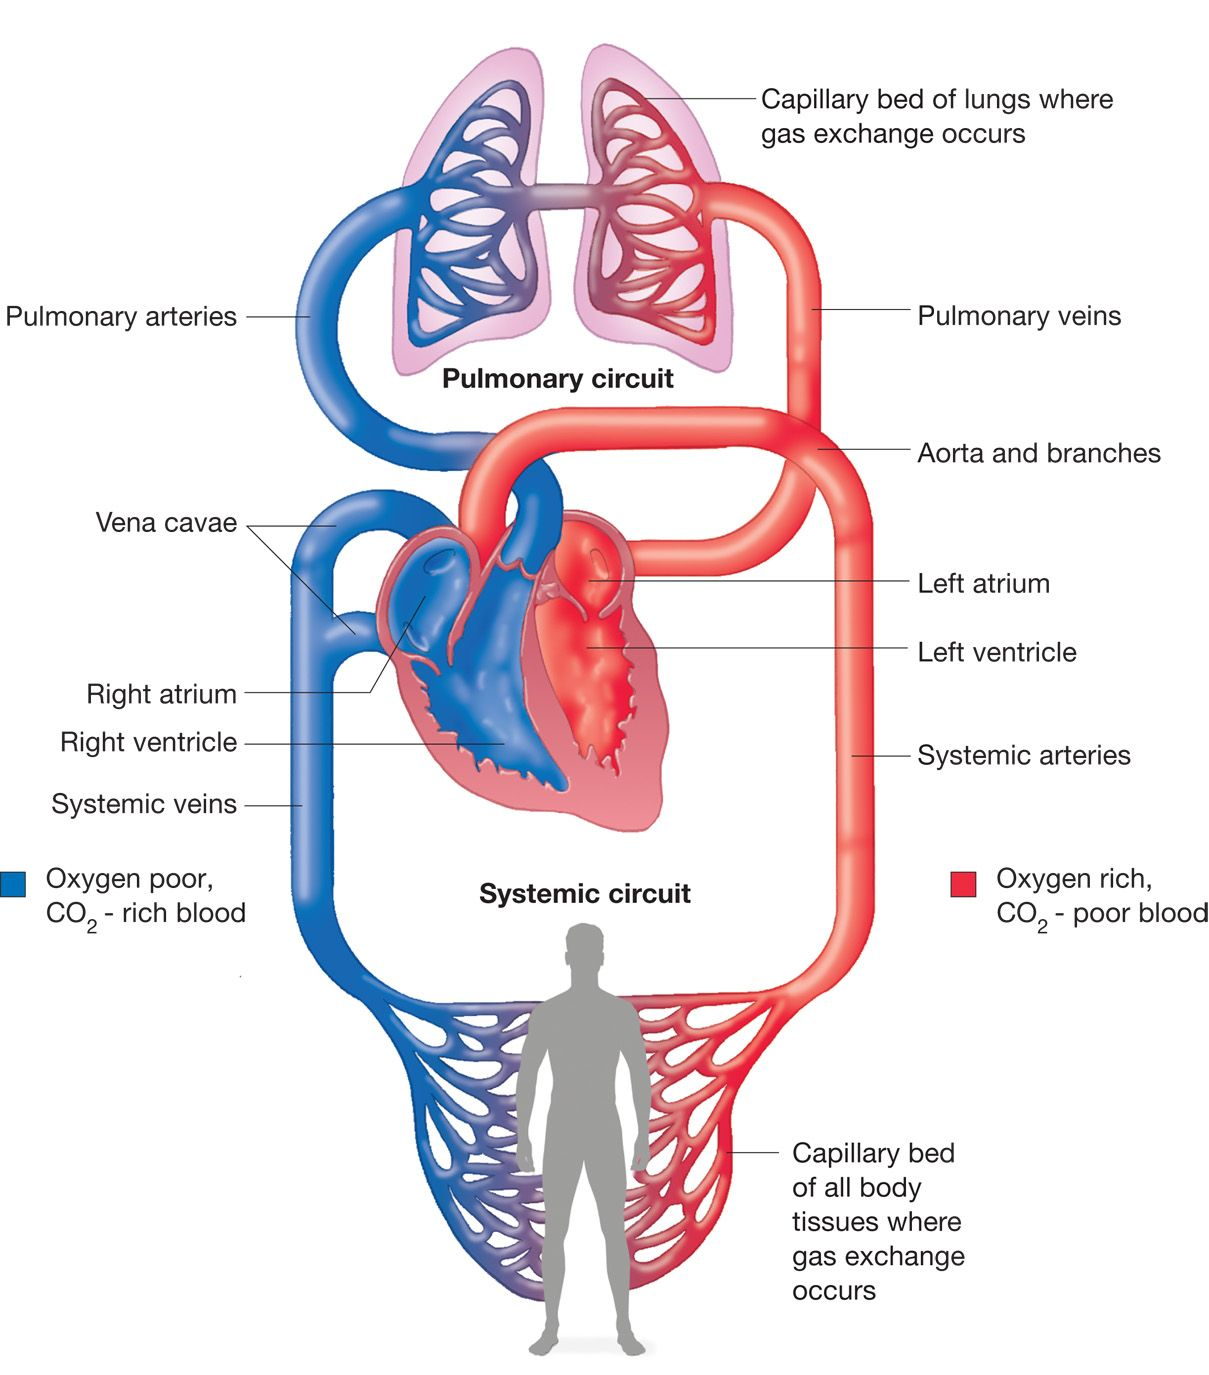 major arteries and veins that deliver and drain blood to and from the upper appendages Dural sinuses receive blood from cerebral veins and deliver blood to other dural sinuses and they are the precursors of the major thoracic veins, including the subclavian, brachiocephalic, azygos any of the veins that accompany the intercostal arteries and drain blood from the.